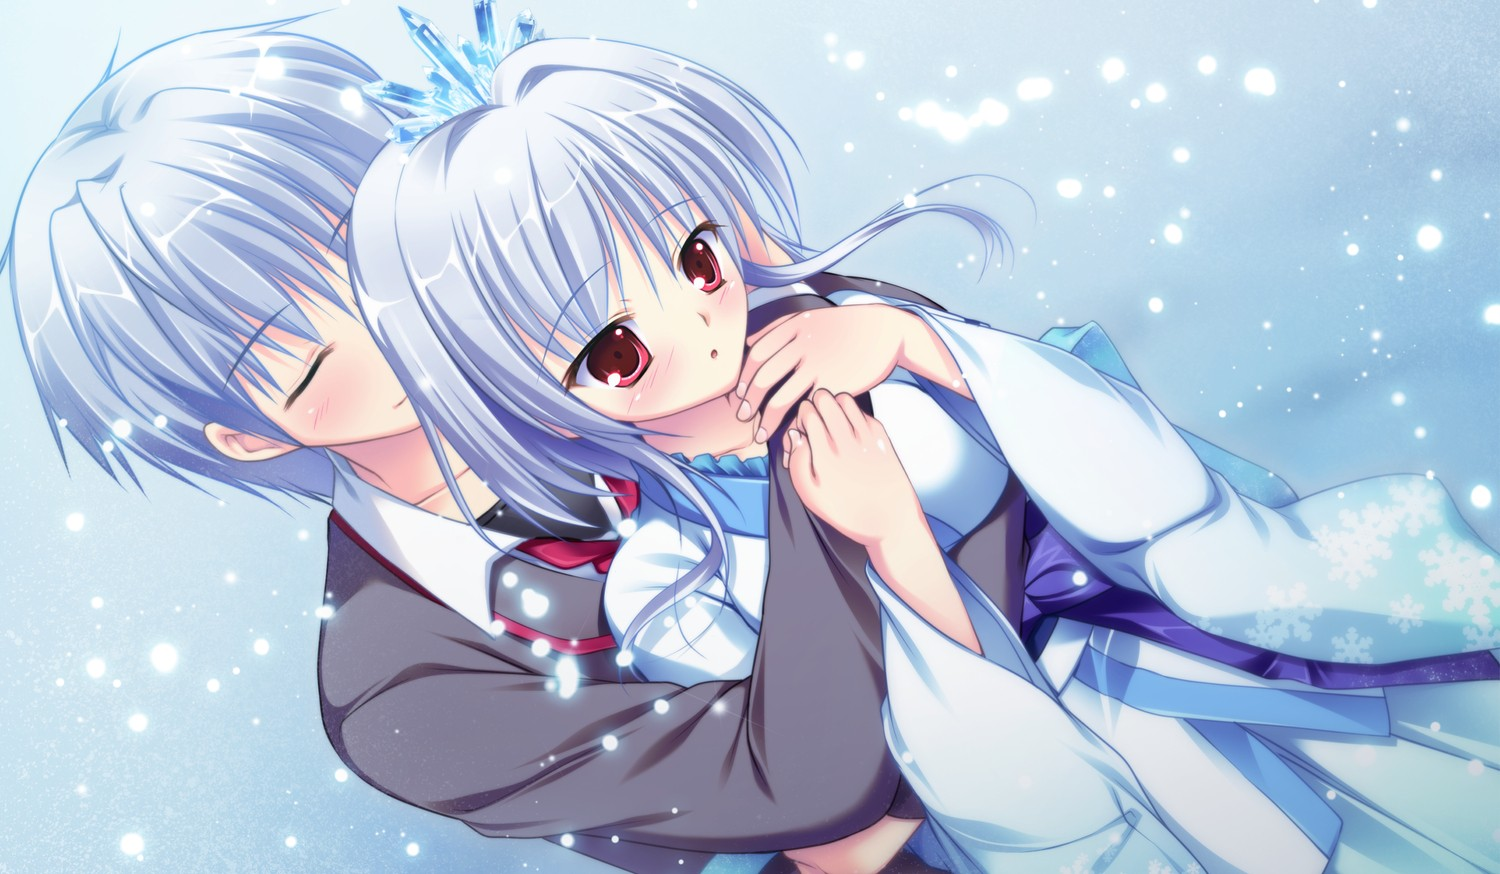 Gf Bf Wallpaper With Quotes Hot Anime Wallpaper Hd Pixelstalk Net